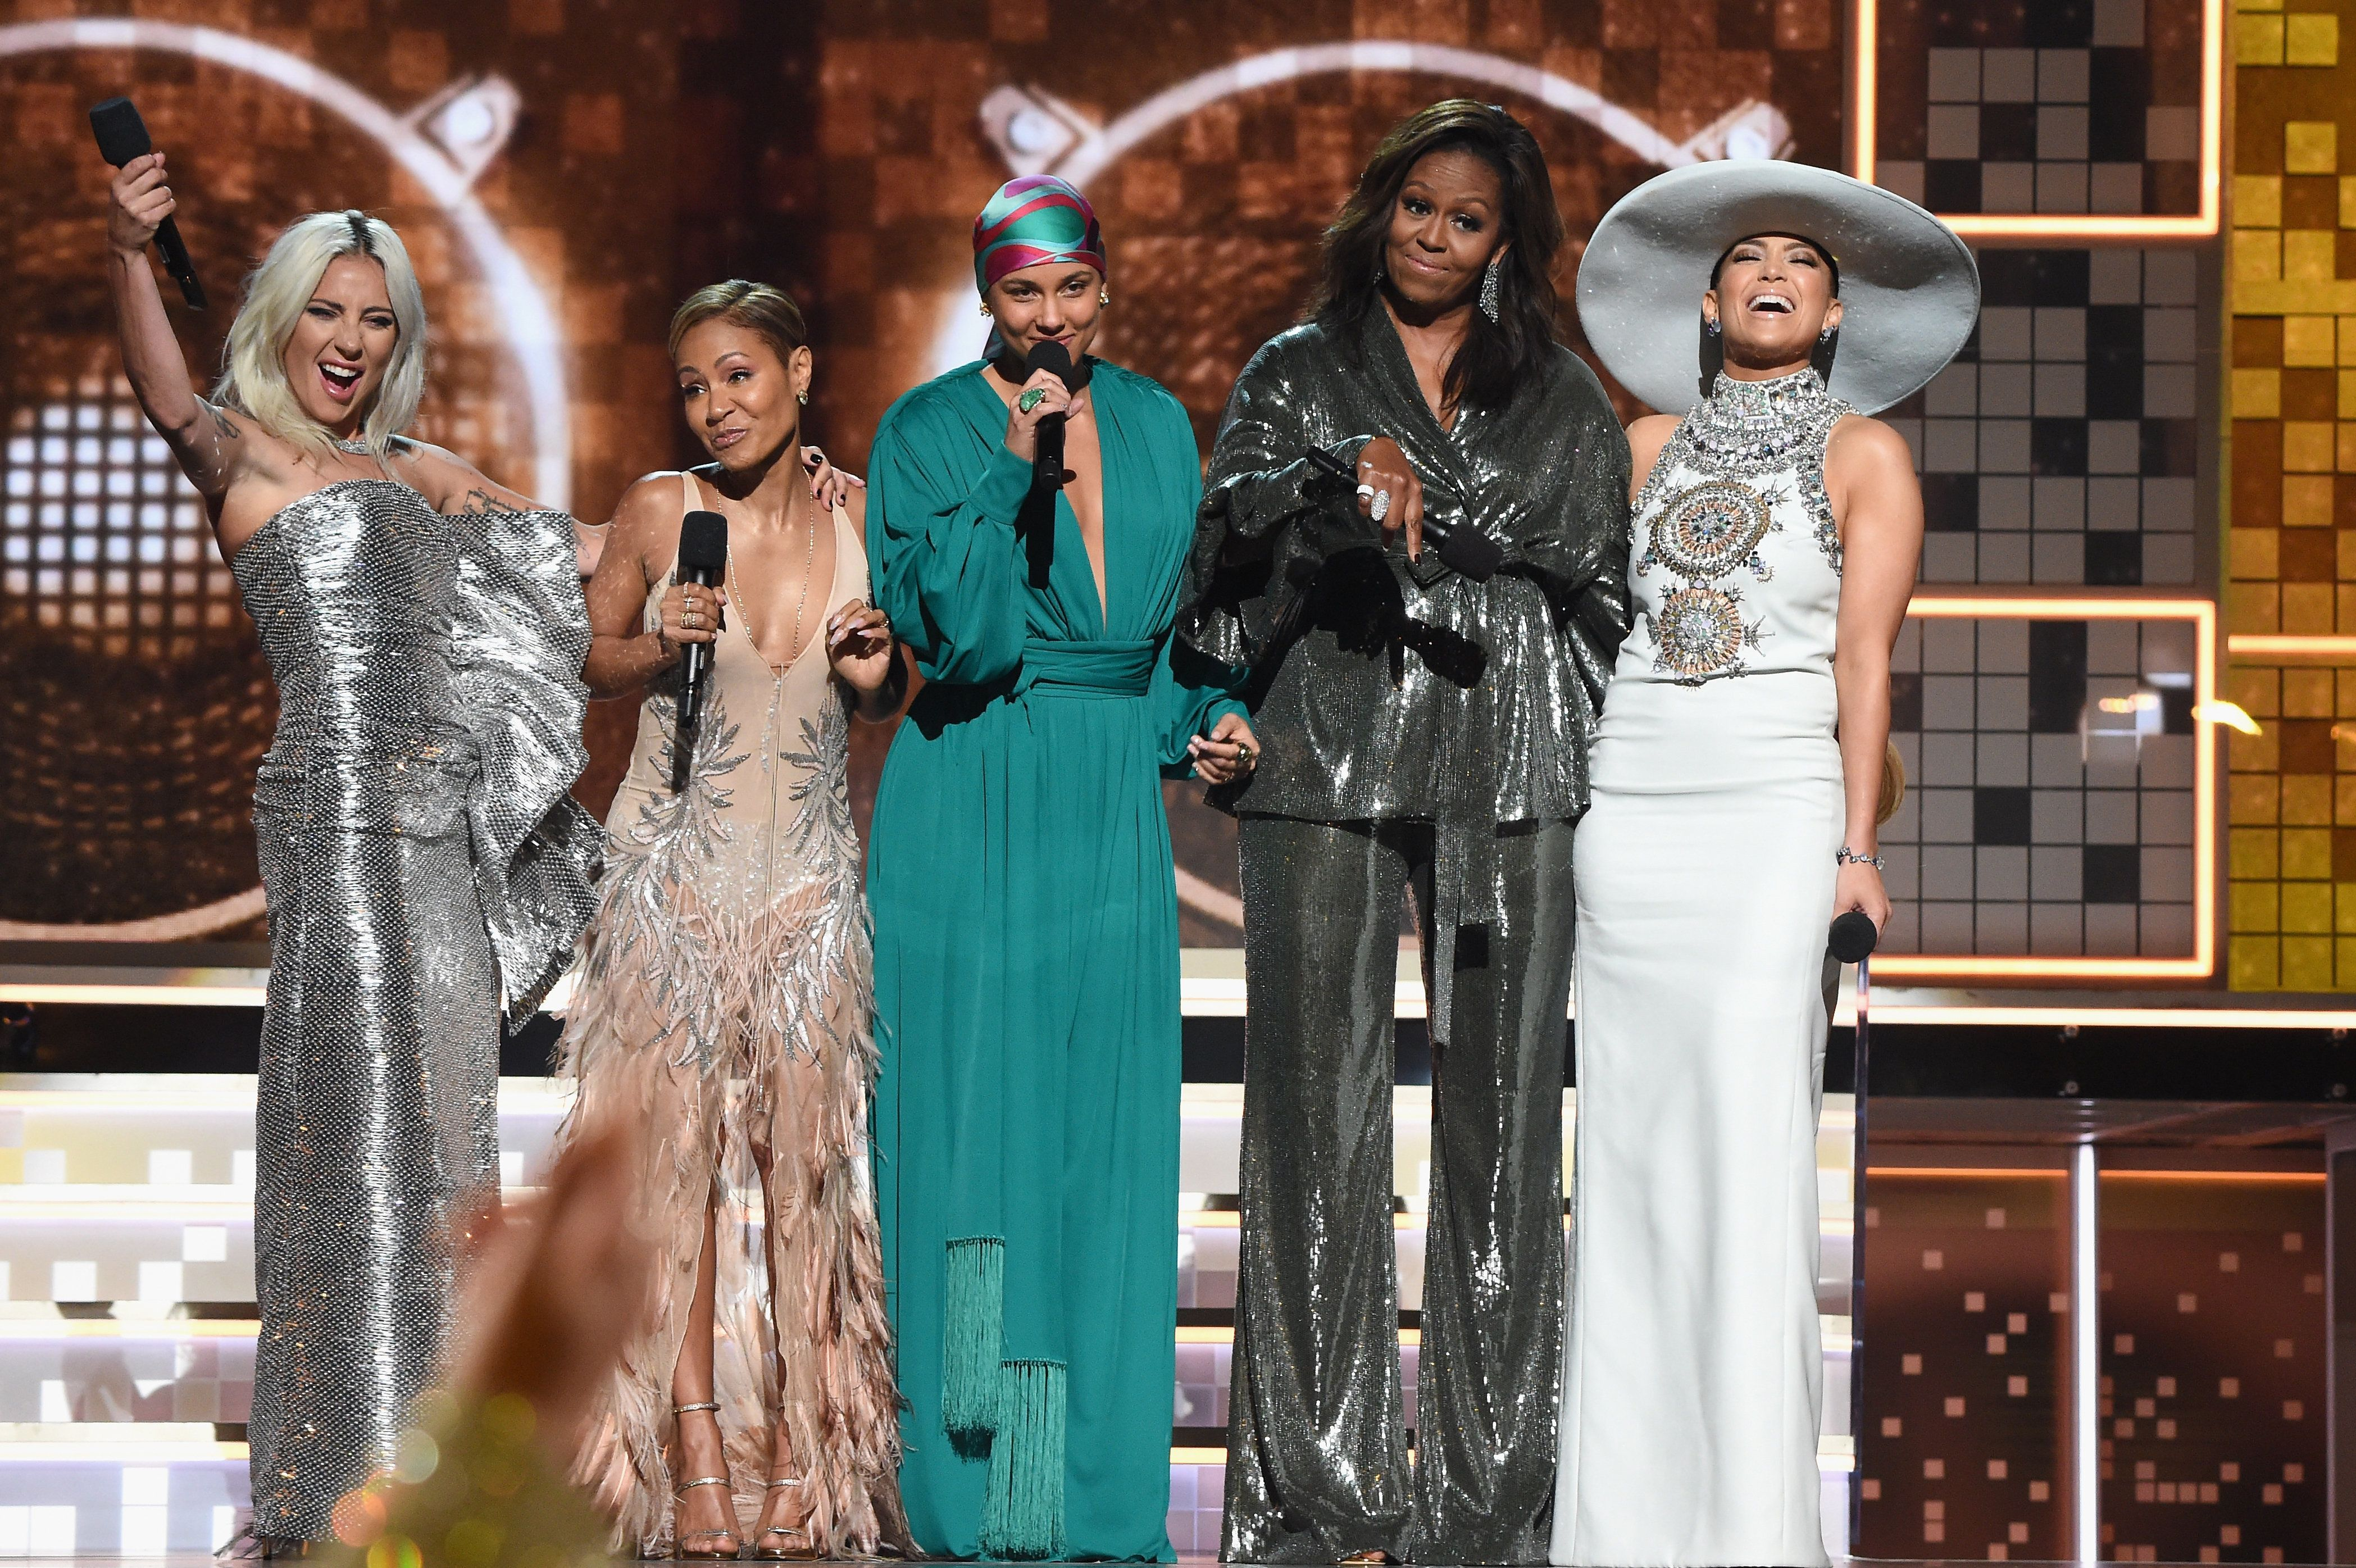 LOS ANGELES, CA - FEBRUARY 10:  (L-R) Lady Gaga, Jada Pinkett Smith, Alicia Keys, Michelle Obama and Jennifer Lopez speak onstage during the 61st Annual GRAMMY Awards at Staples Center on February 10, 2019 in Los Angeles, California.  (Photo by Kevin Mazur/Getty Images for The Recording Academy)